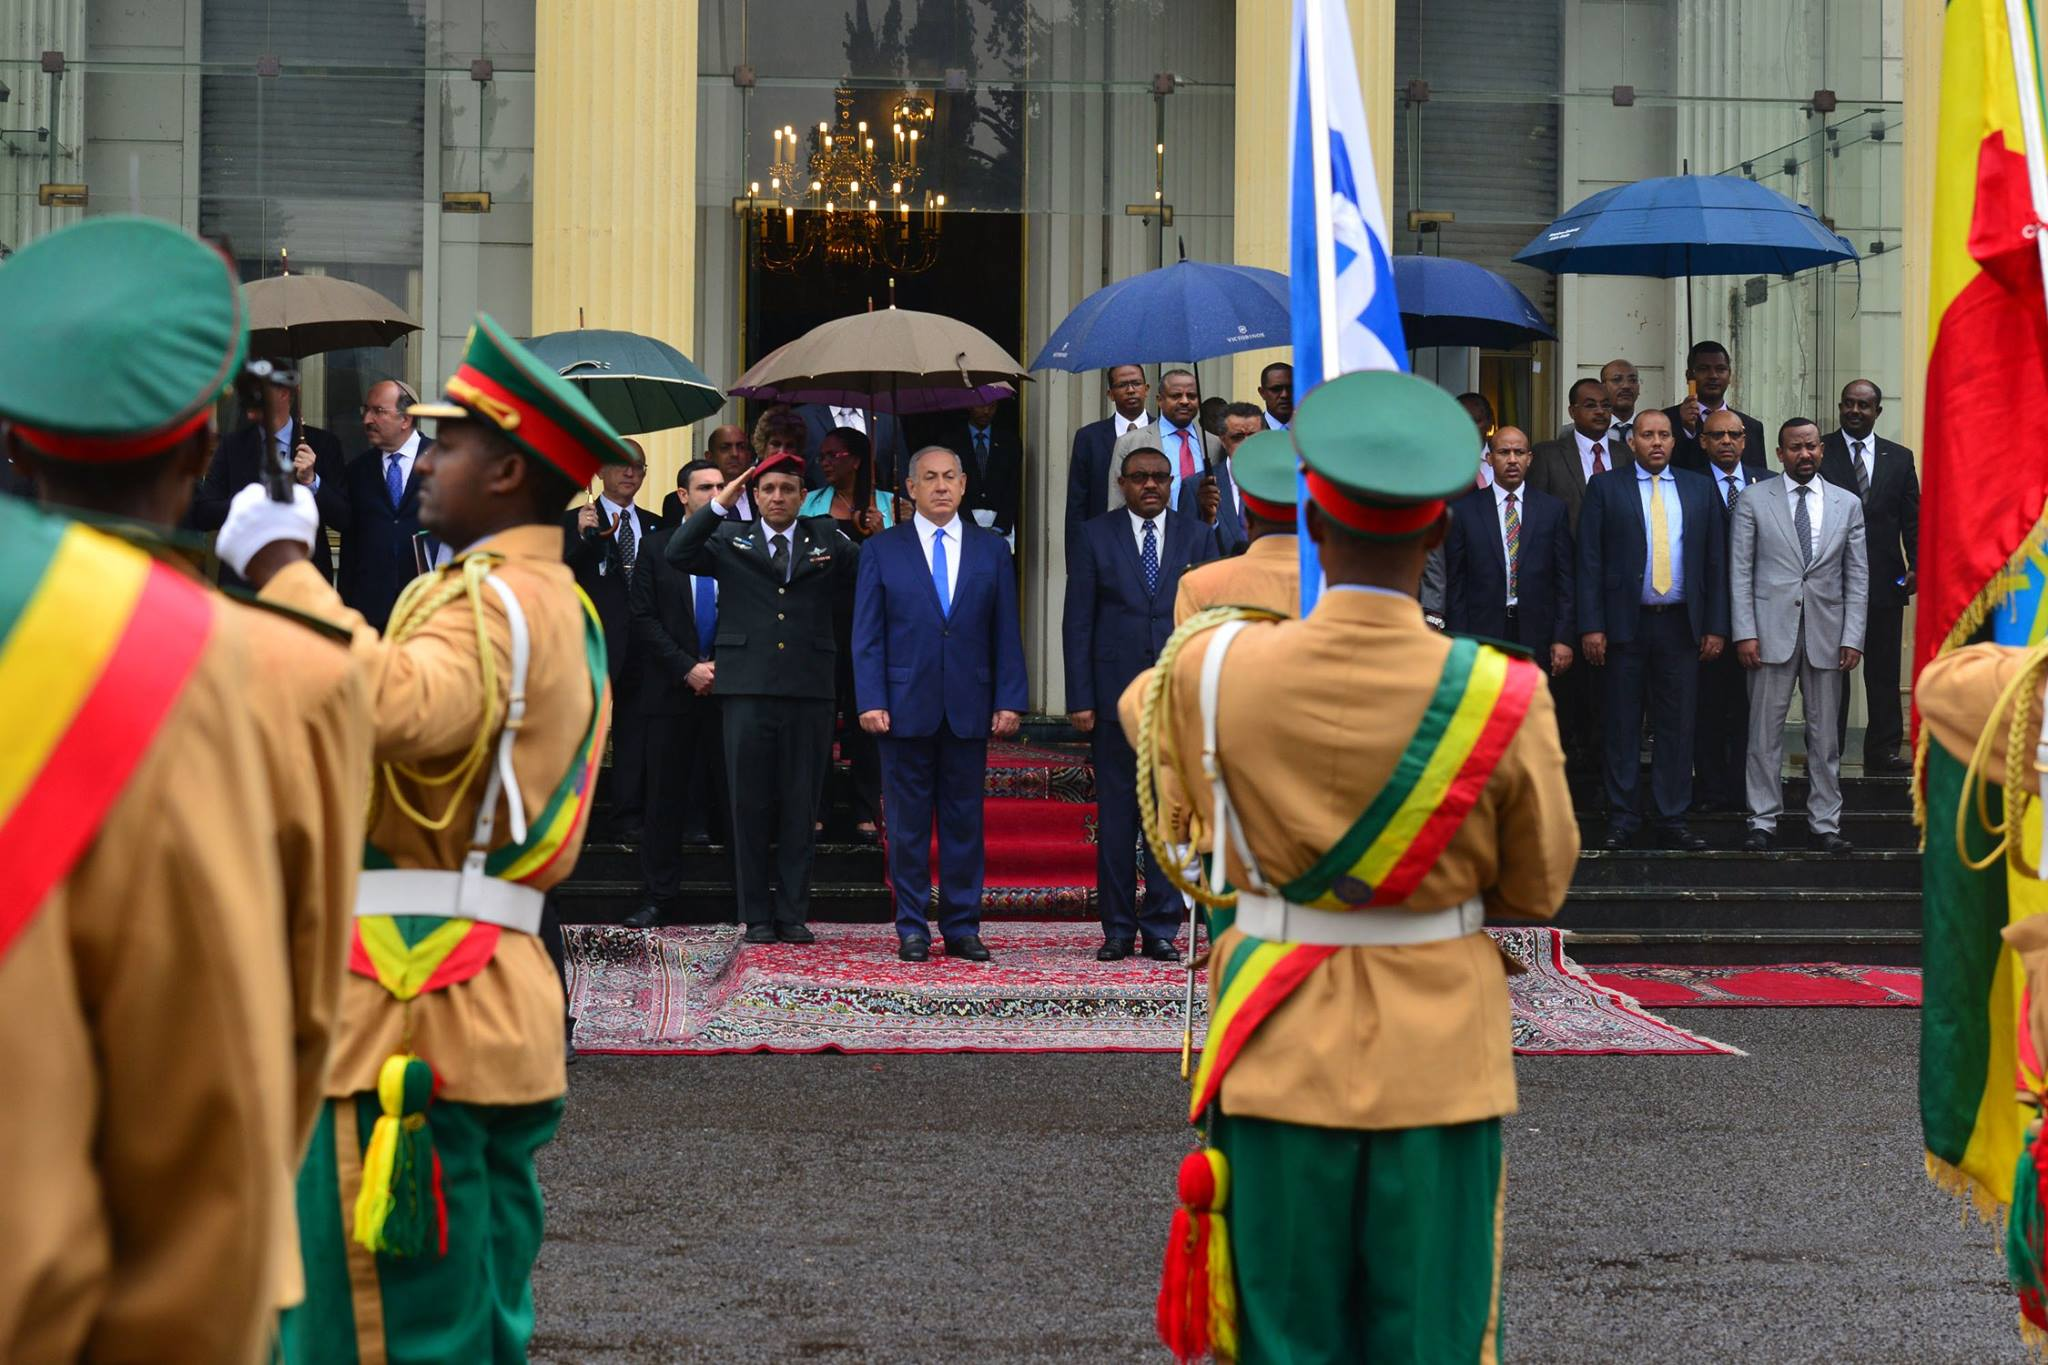 Natenyahu and Hailemariam Desalegne - source The Prime Minister Of Israel page on Facebook